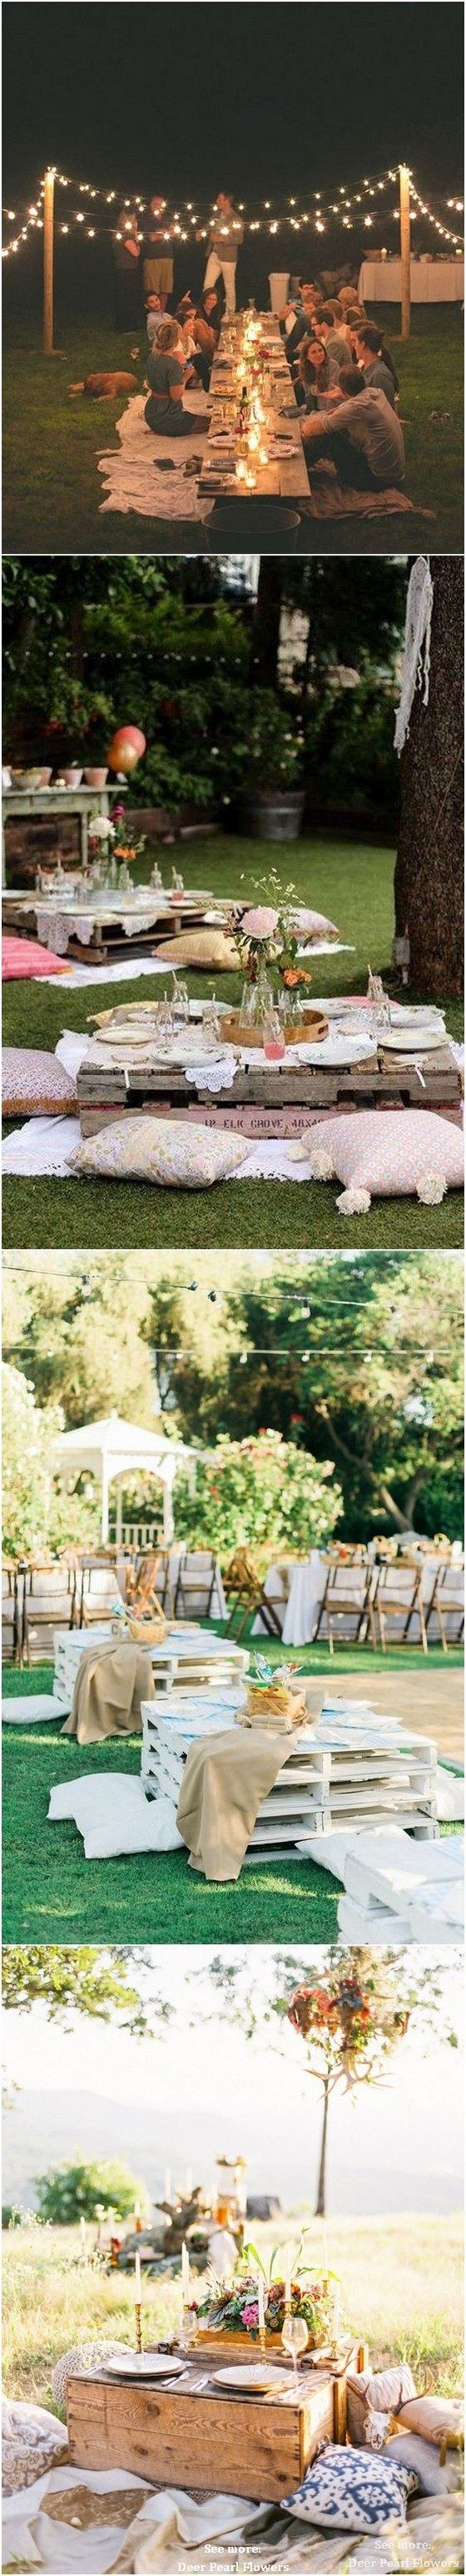 577 best Outdoor Weddings images on Pinterest | Birthdays, Pies and ...